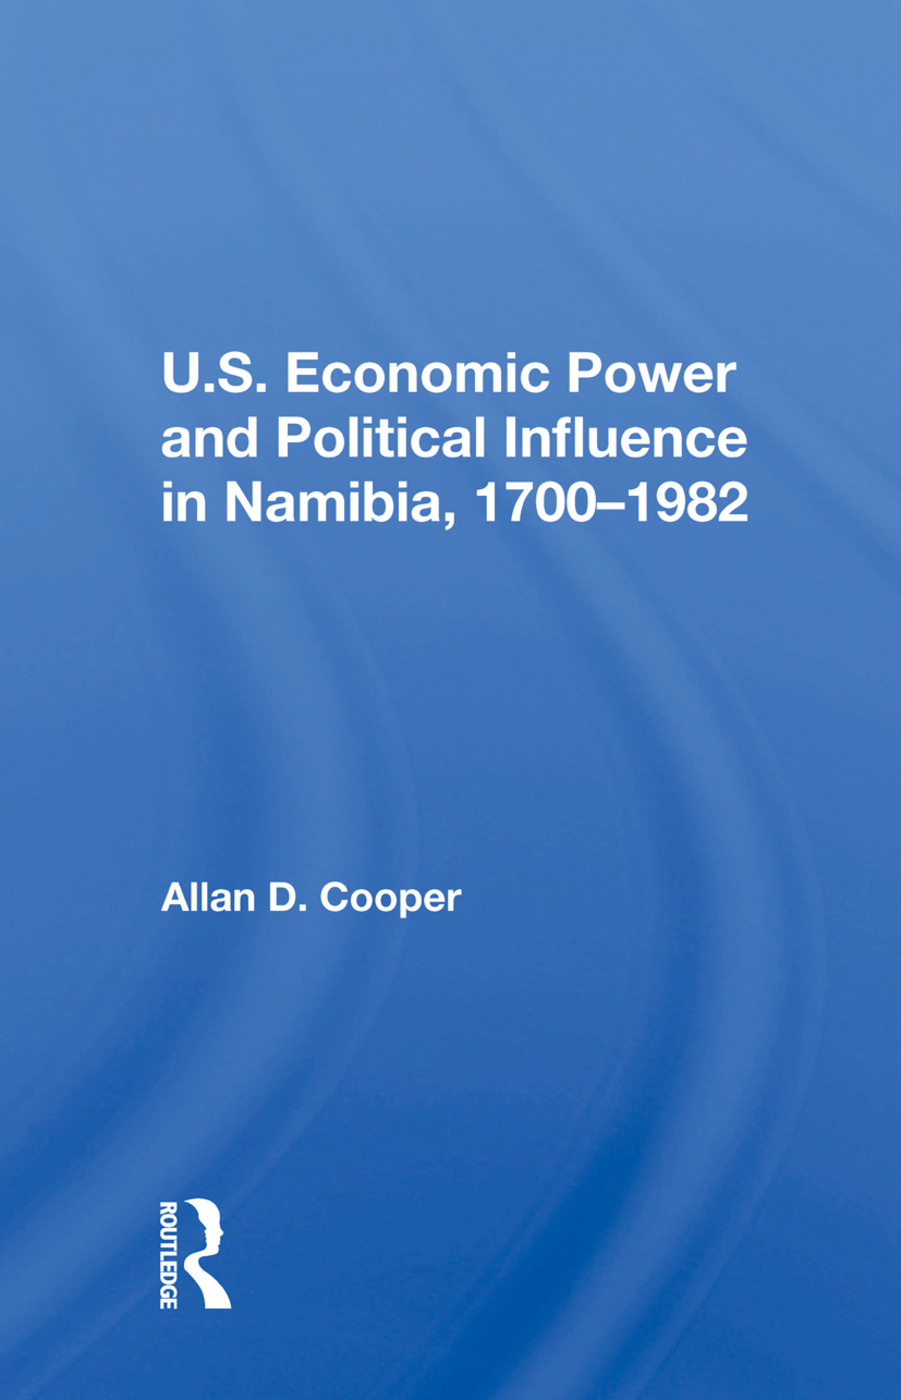 U.S. Economic Power And Political Influence In Namibia, 1700-1982 book cover